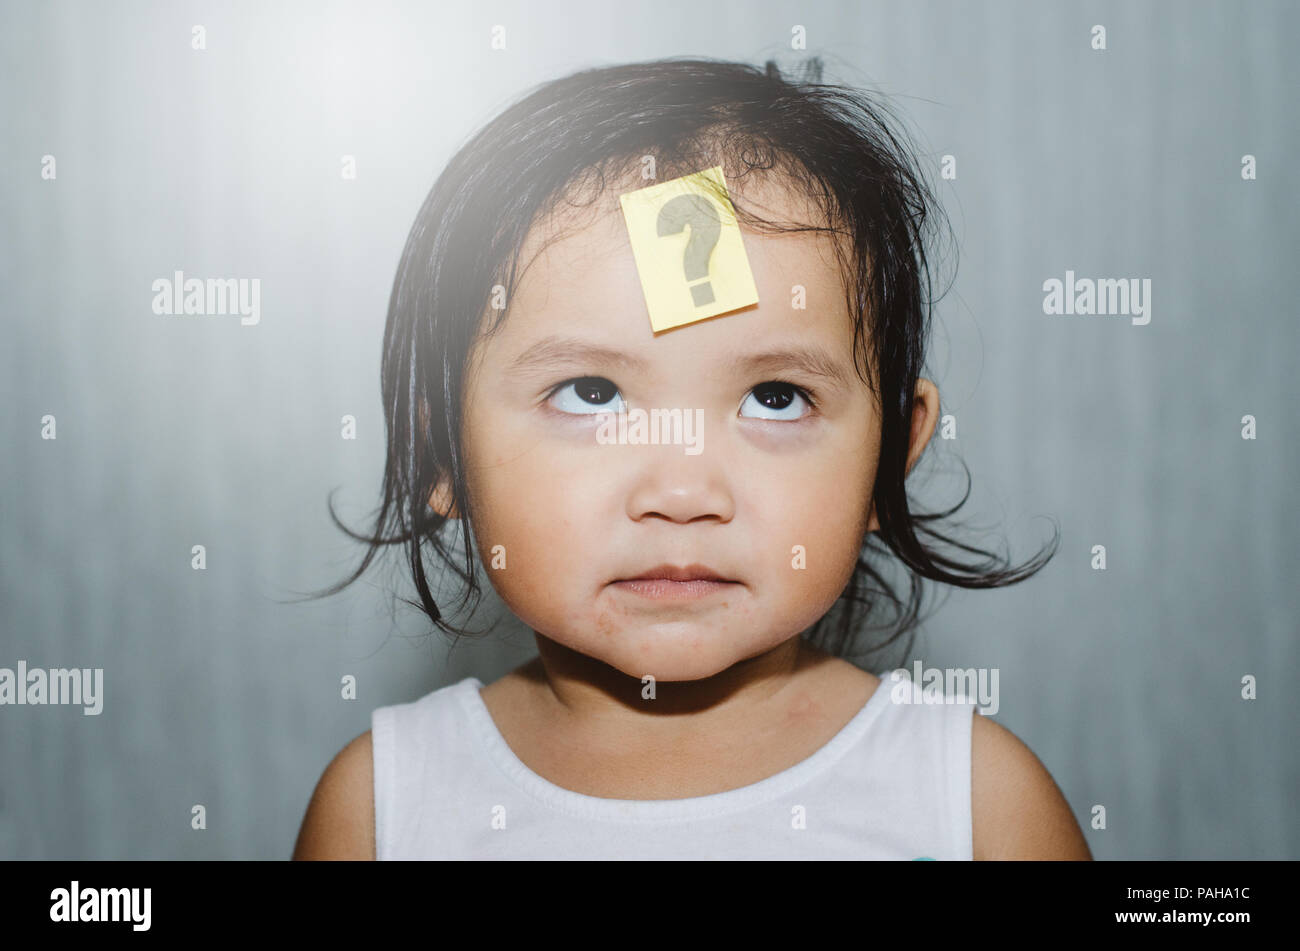 asian cute toddler looking at question mark on her forehead with funny face. child learning and growth concept - Stock Image